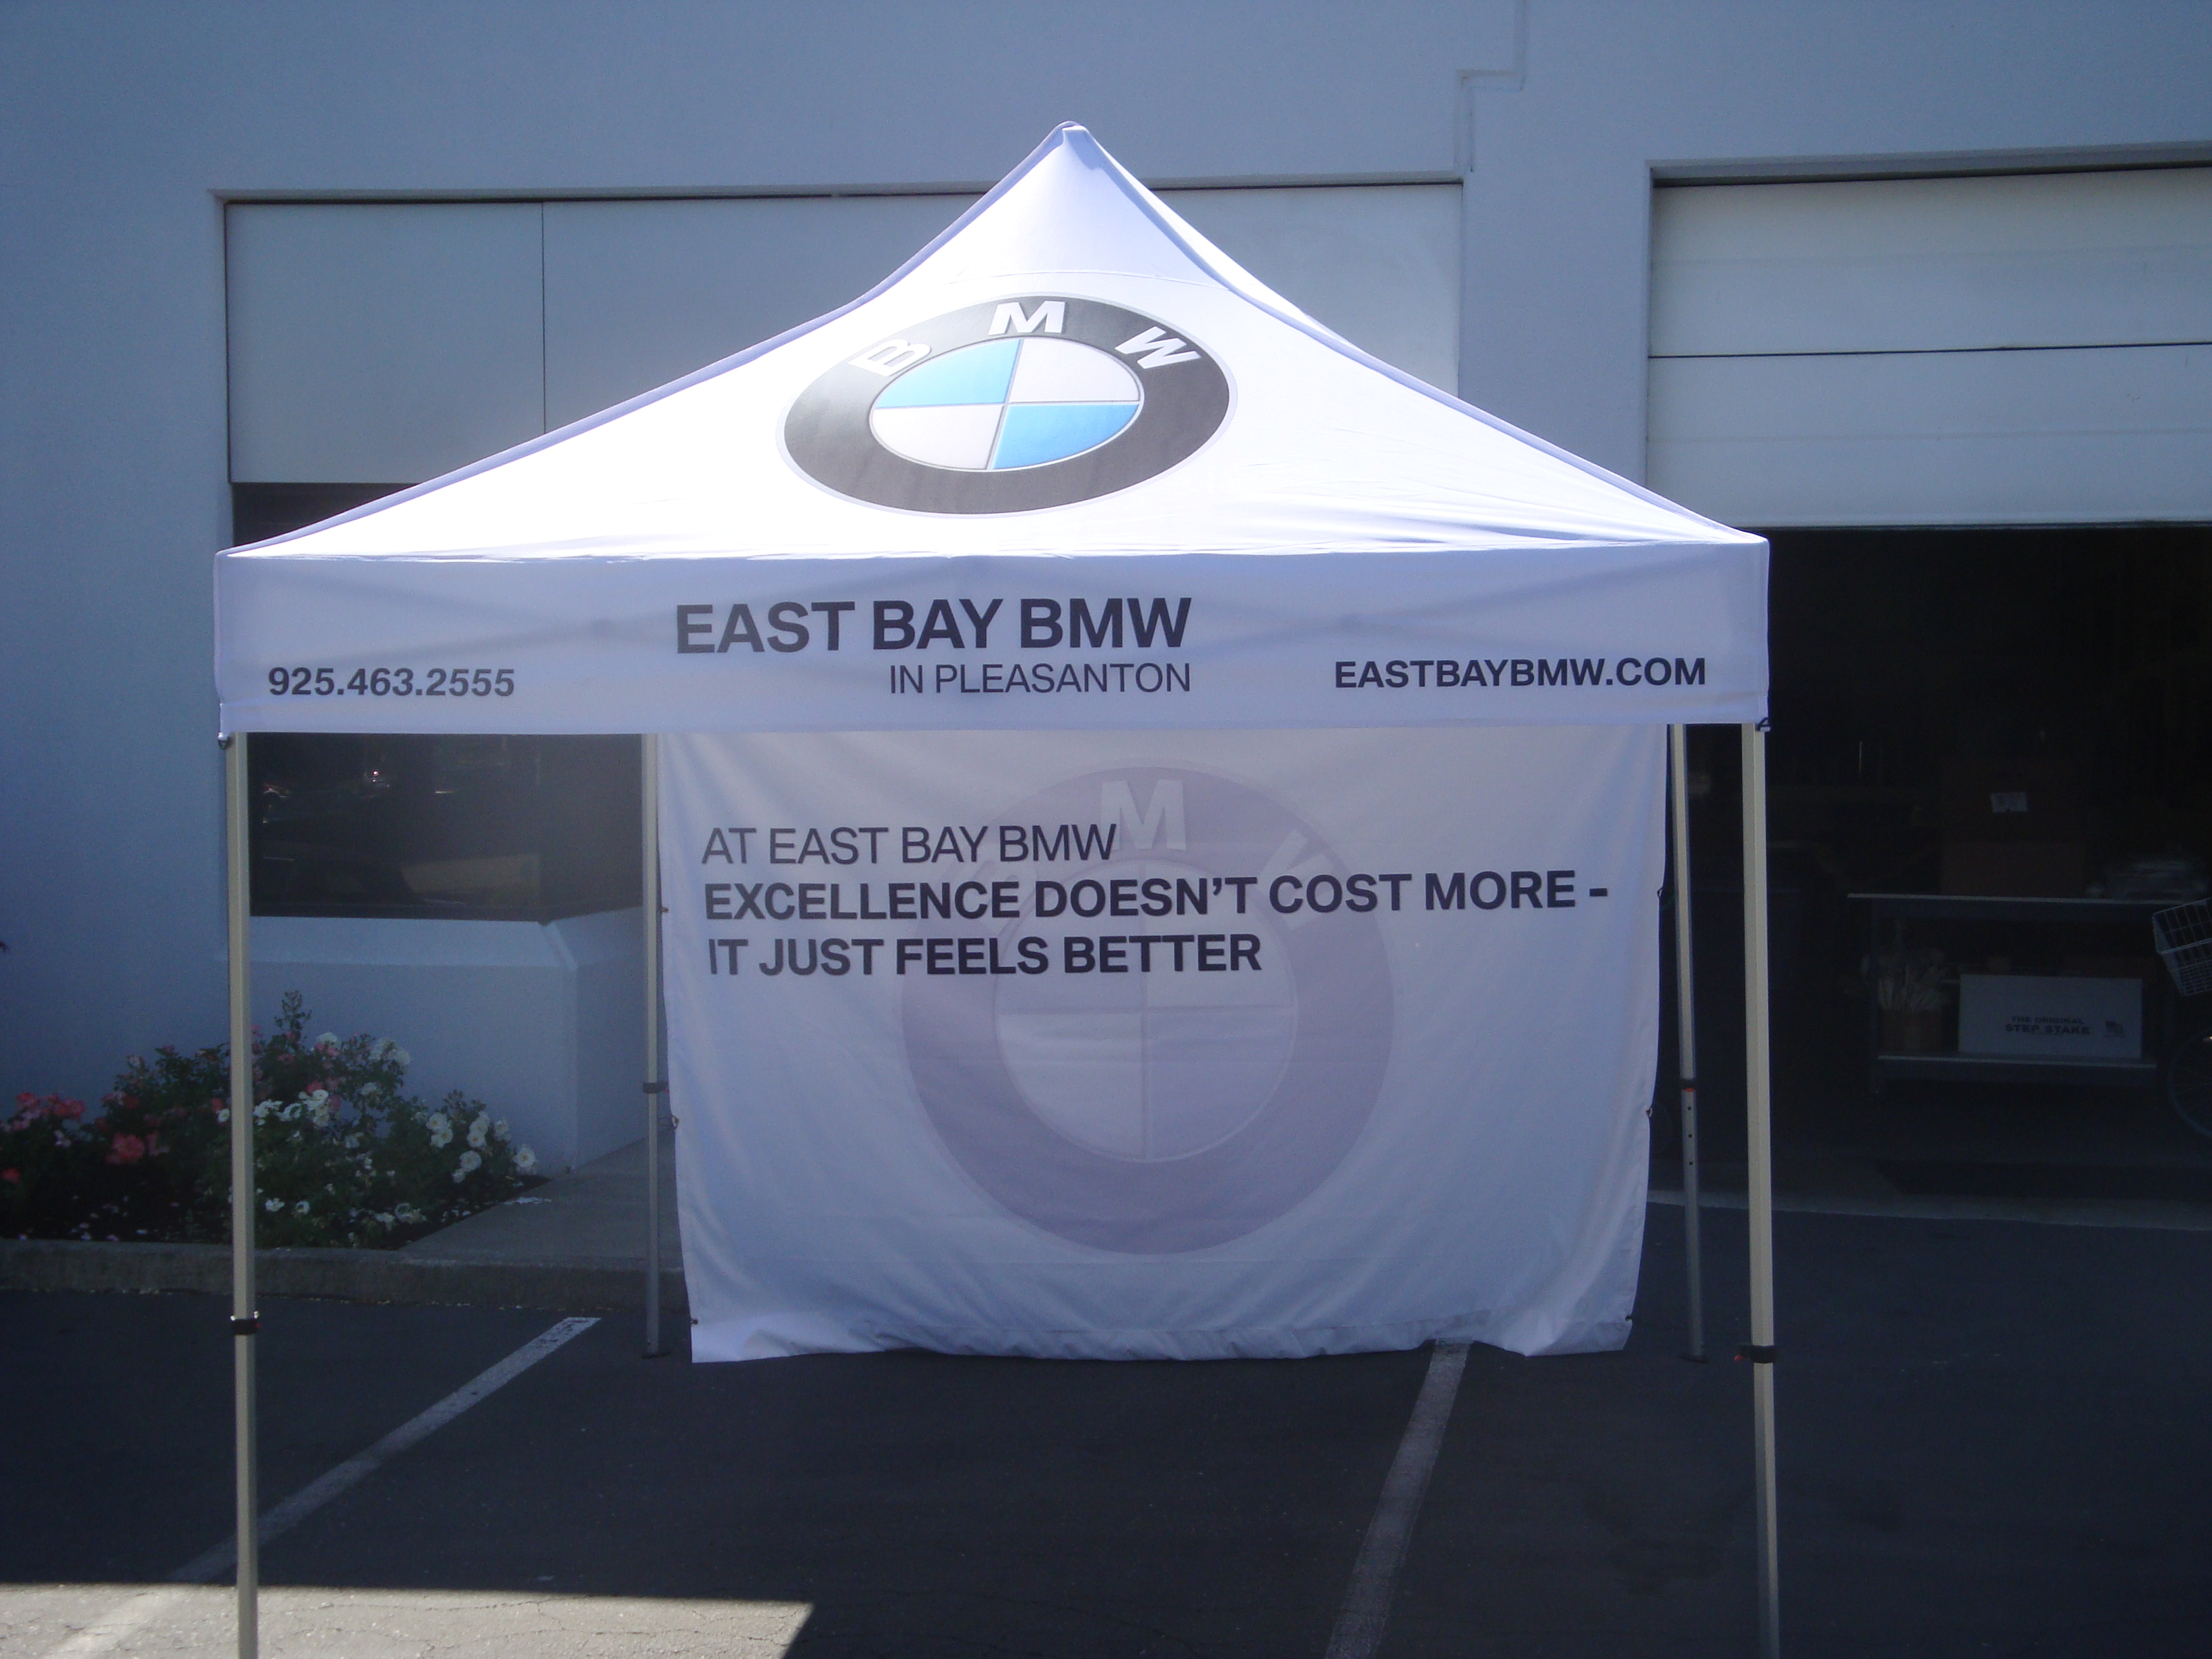 Trade Show Event Signs Package In Pleasanton Ca For East Bay Bmw Mini